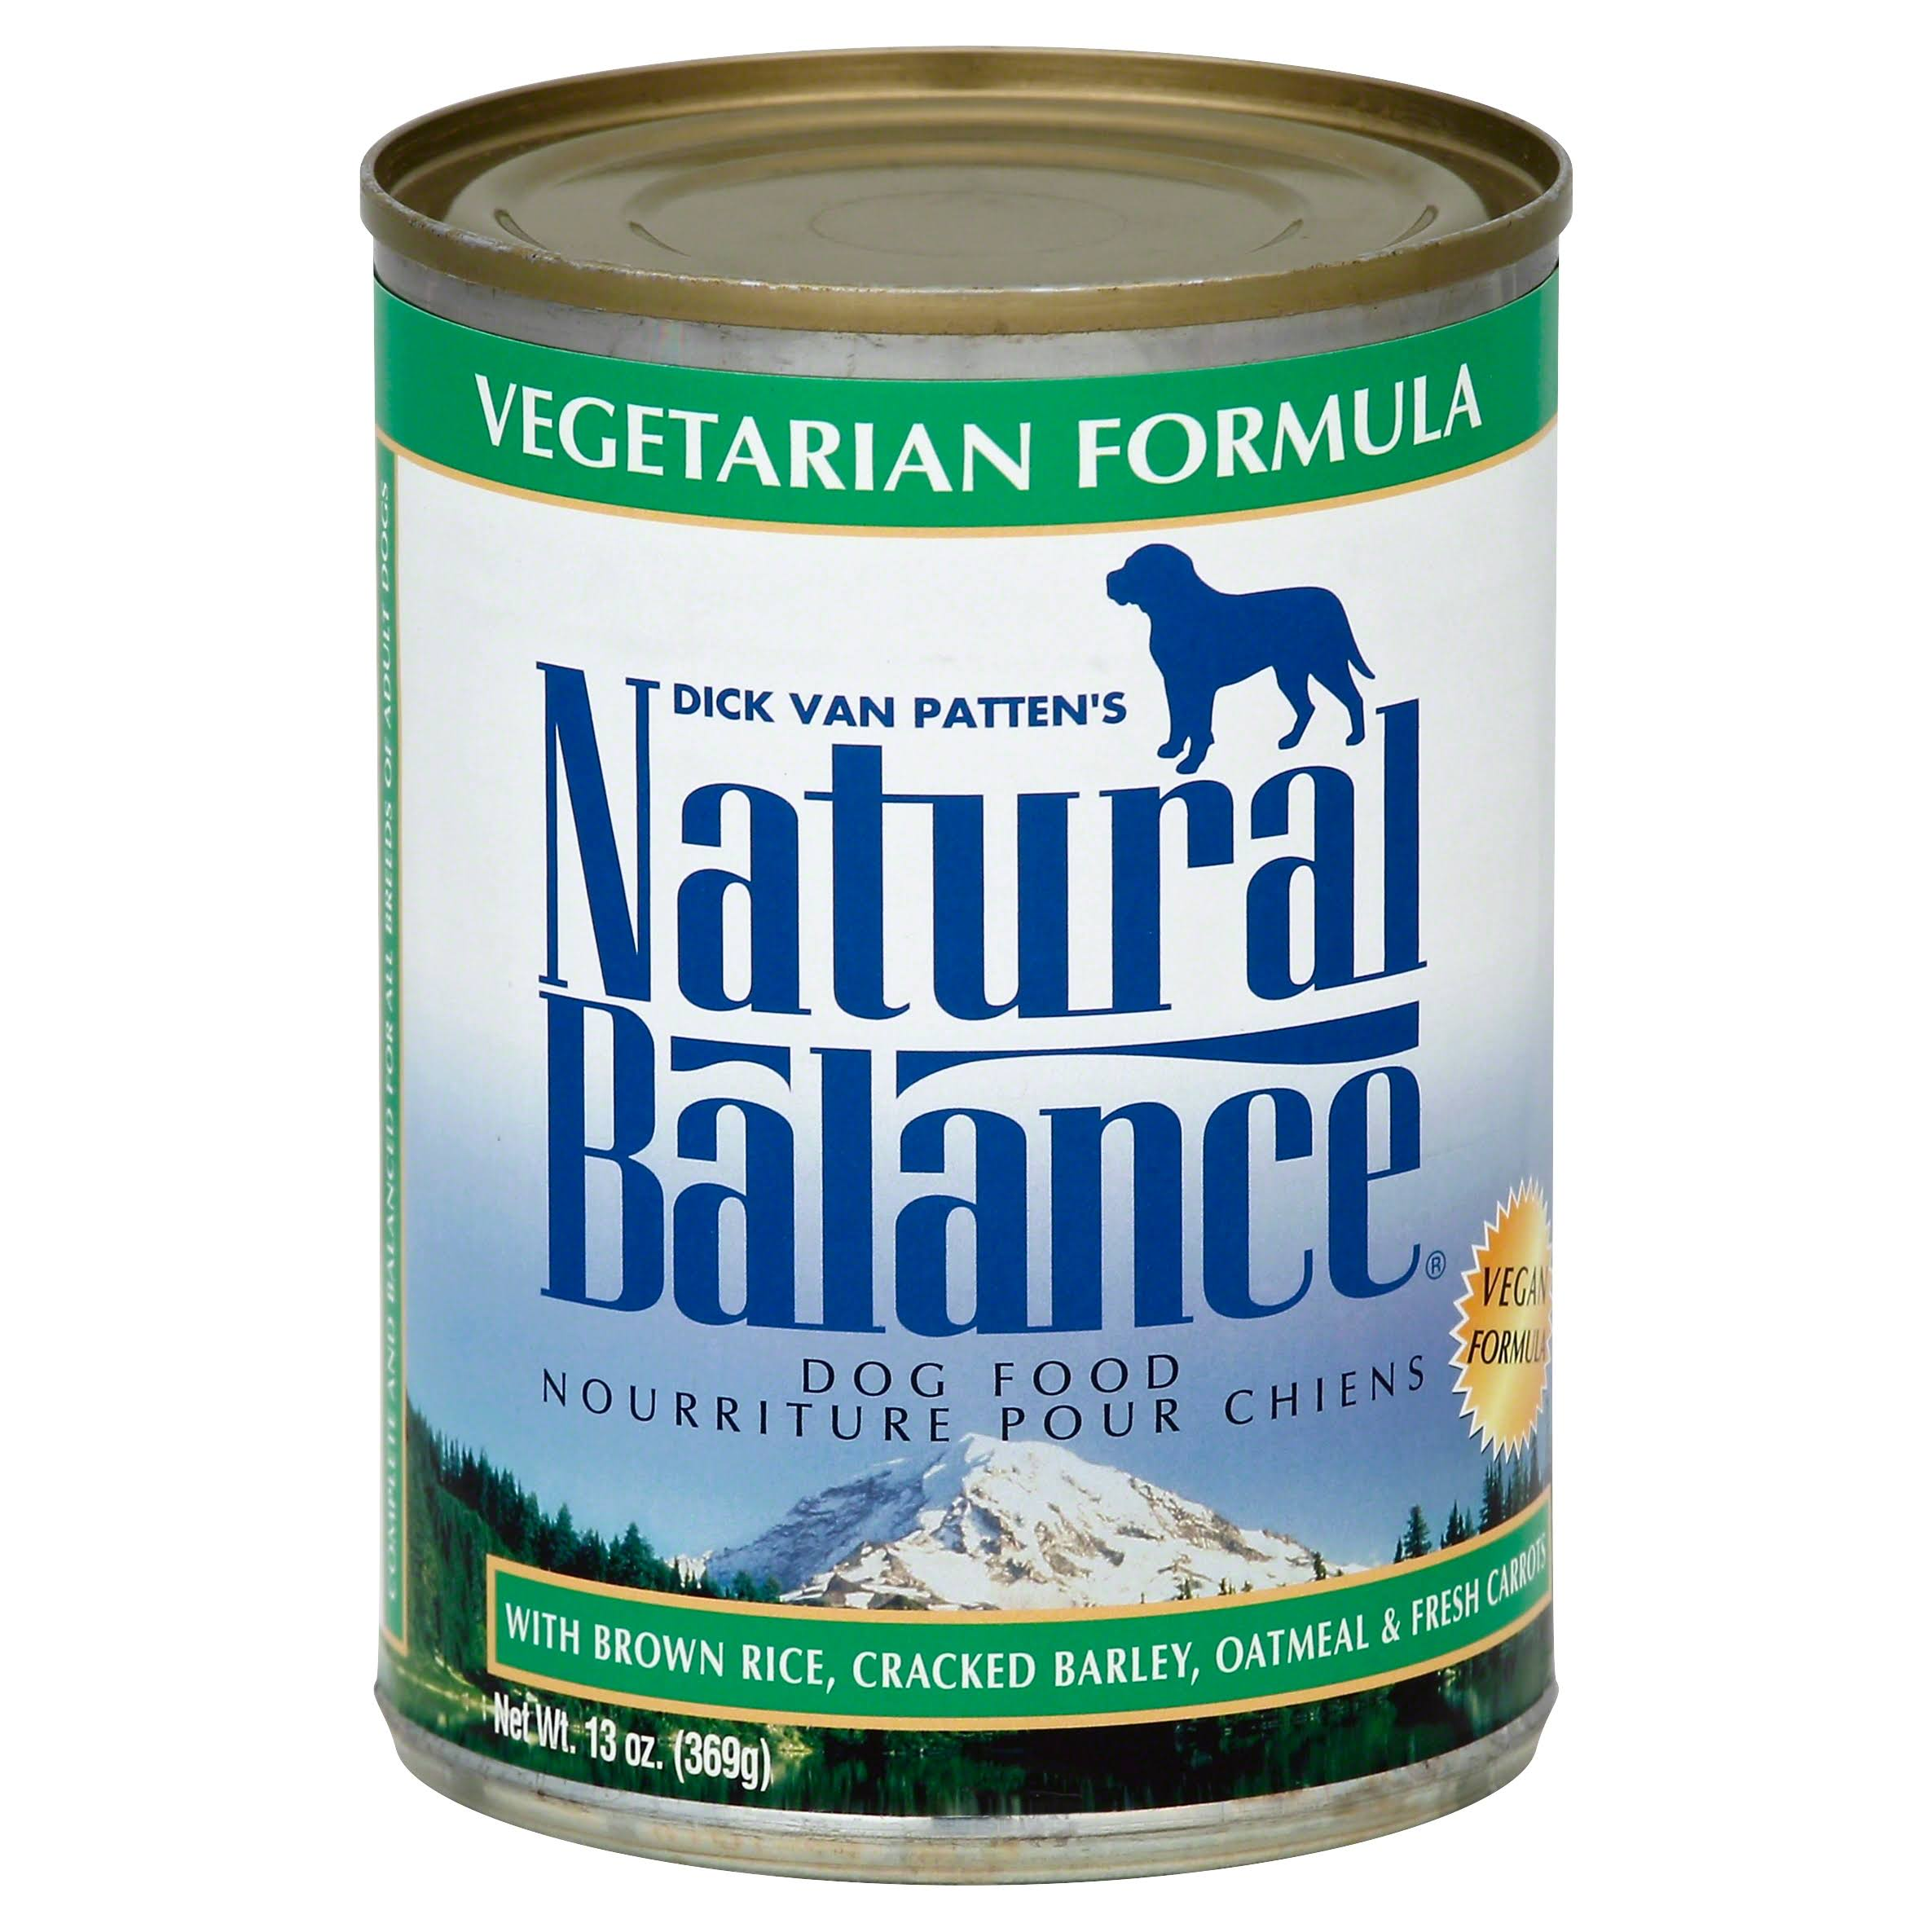 Natural Balance Vegetarian Formula Dog Food